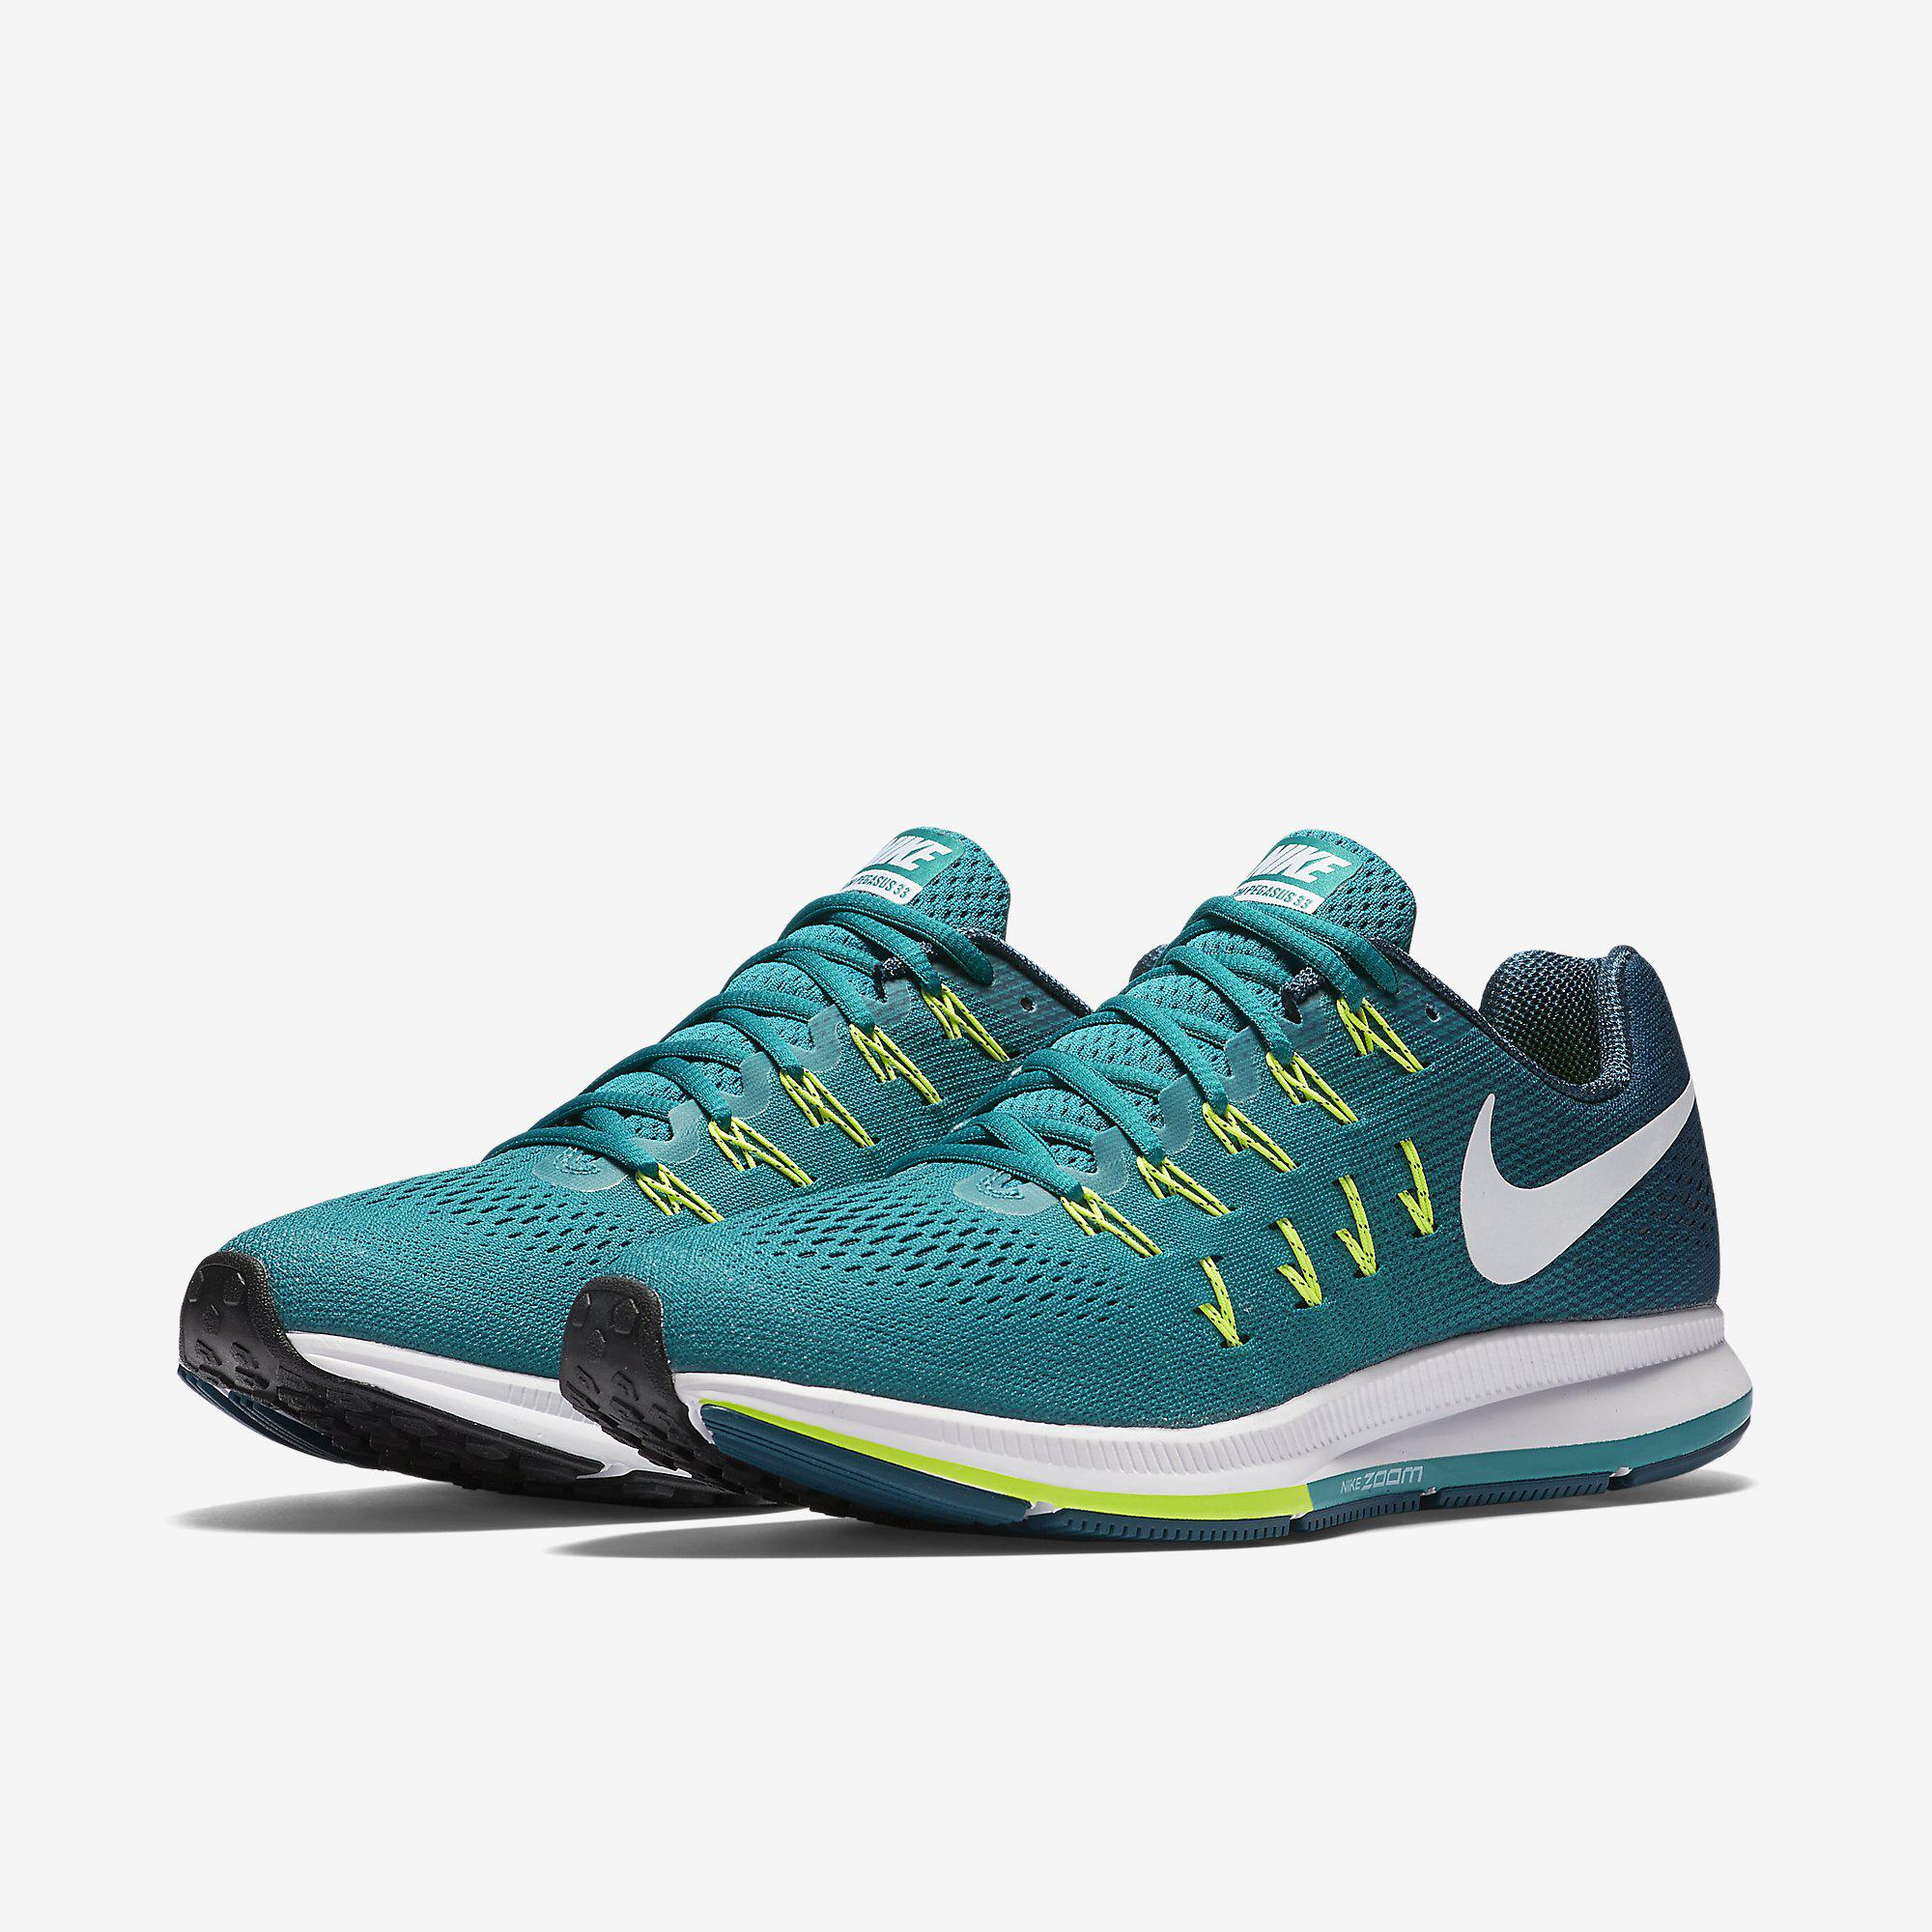 best sneakers 1a51b 1e033 Nike Mens Air Zoom Pegasus 33 Running Shoes - Rio Teal Midnight Turquoise